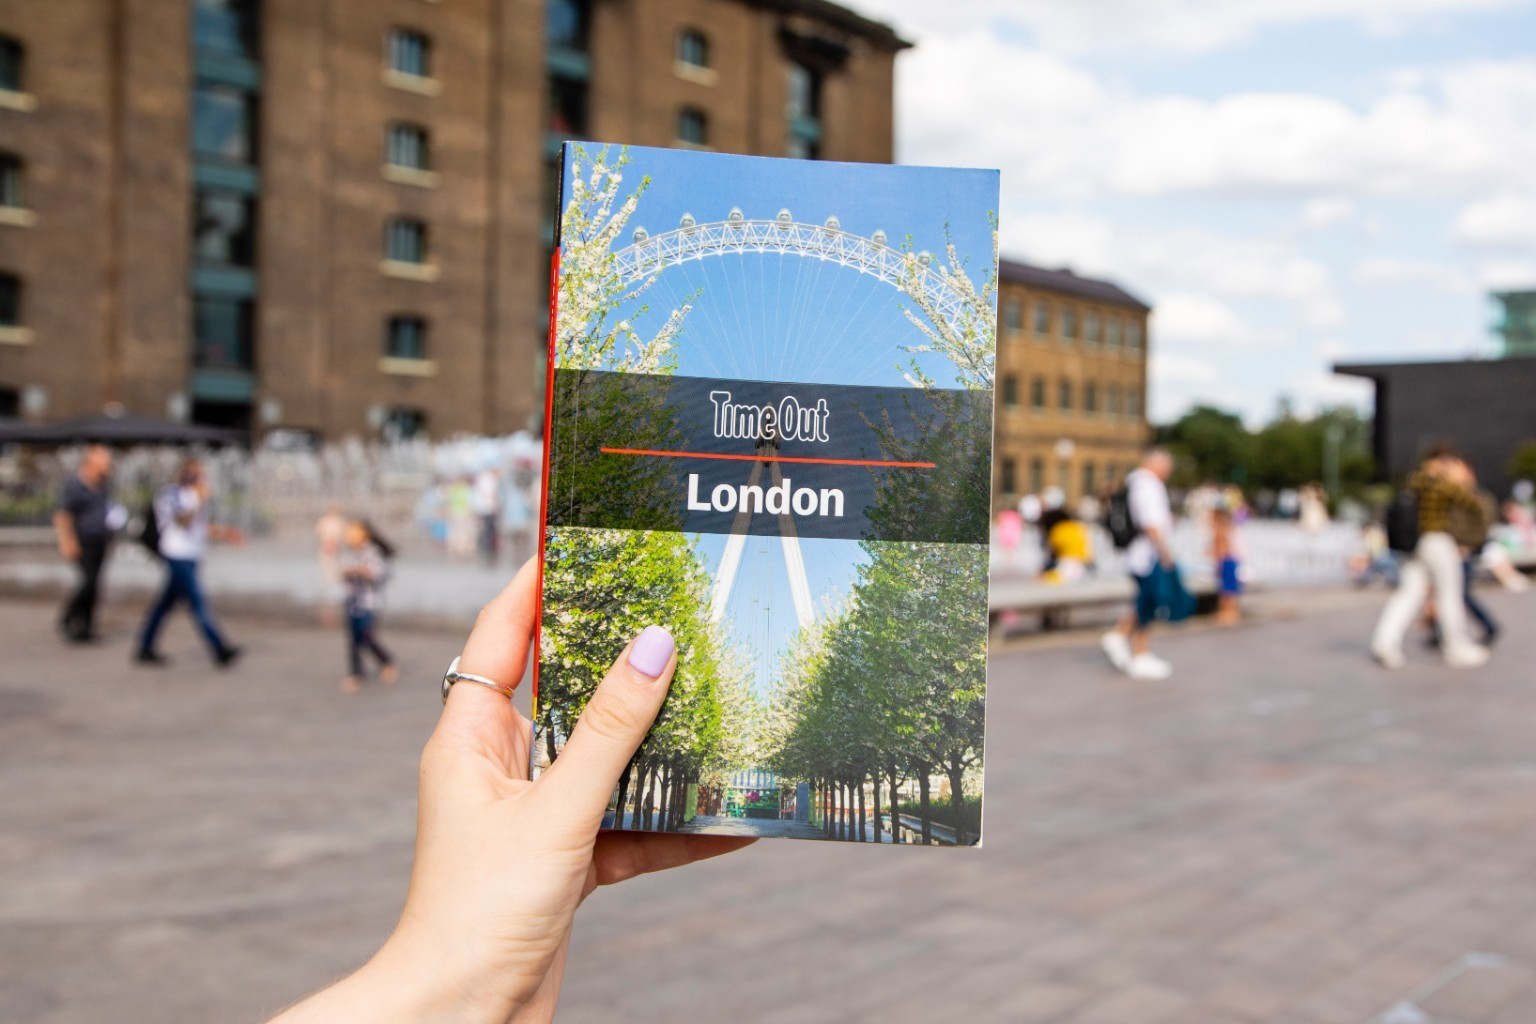 Travelling to London? You can read Time Out (in book form!) to find out where to go